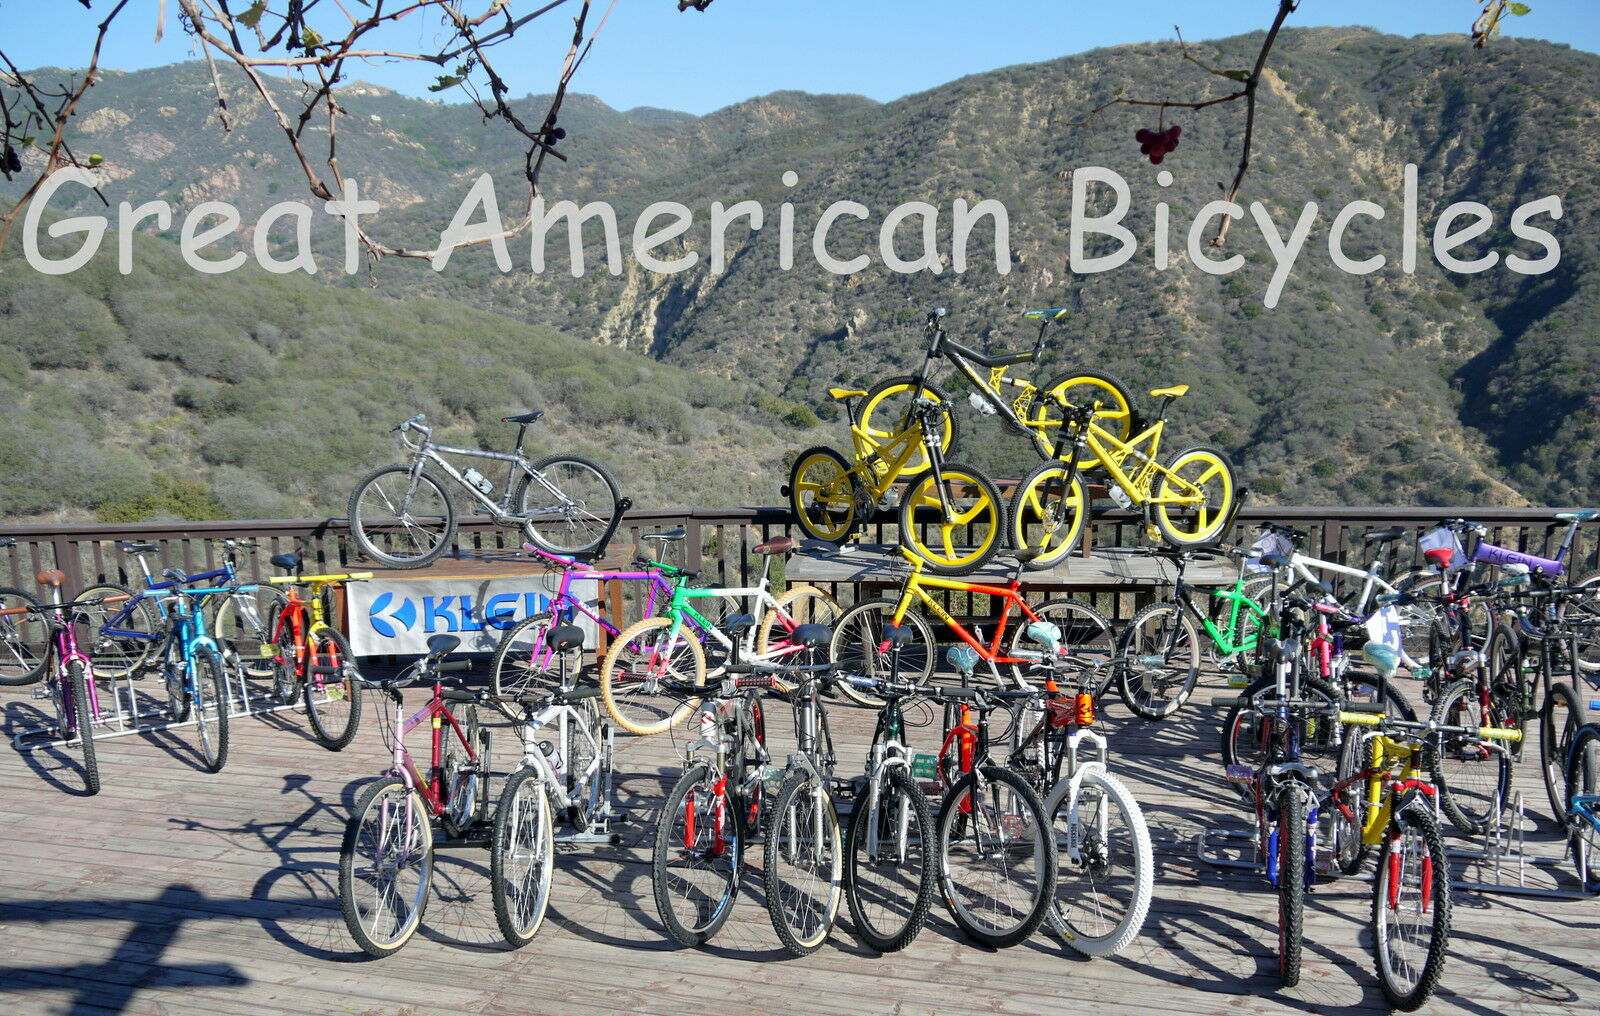 Great American Bicycles